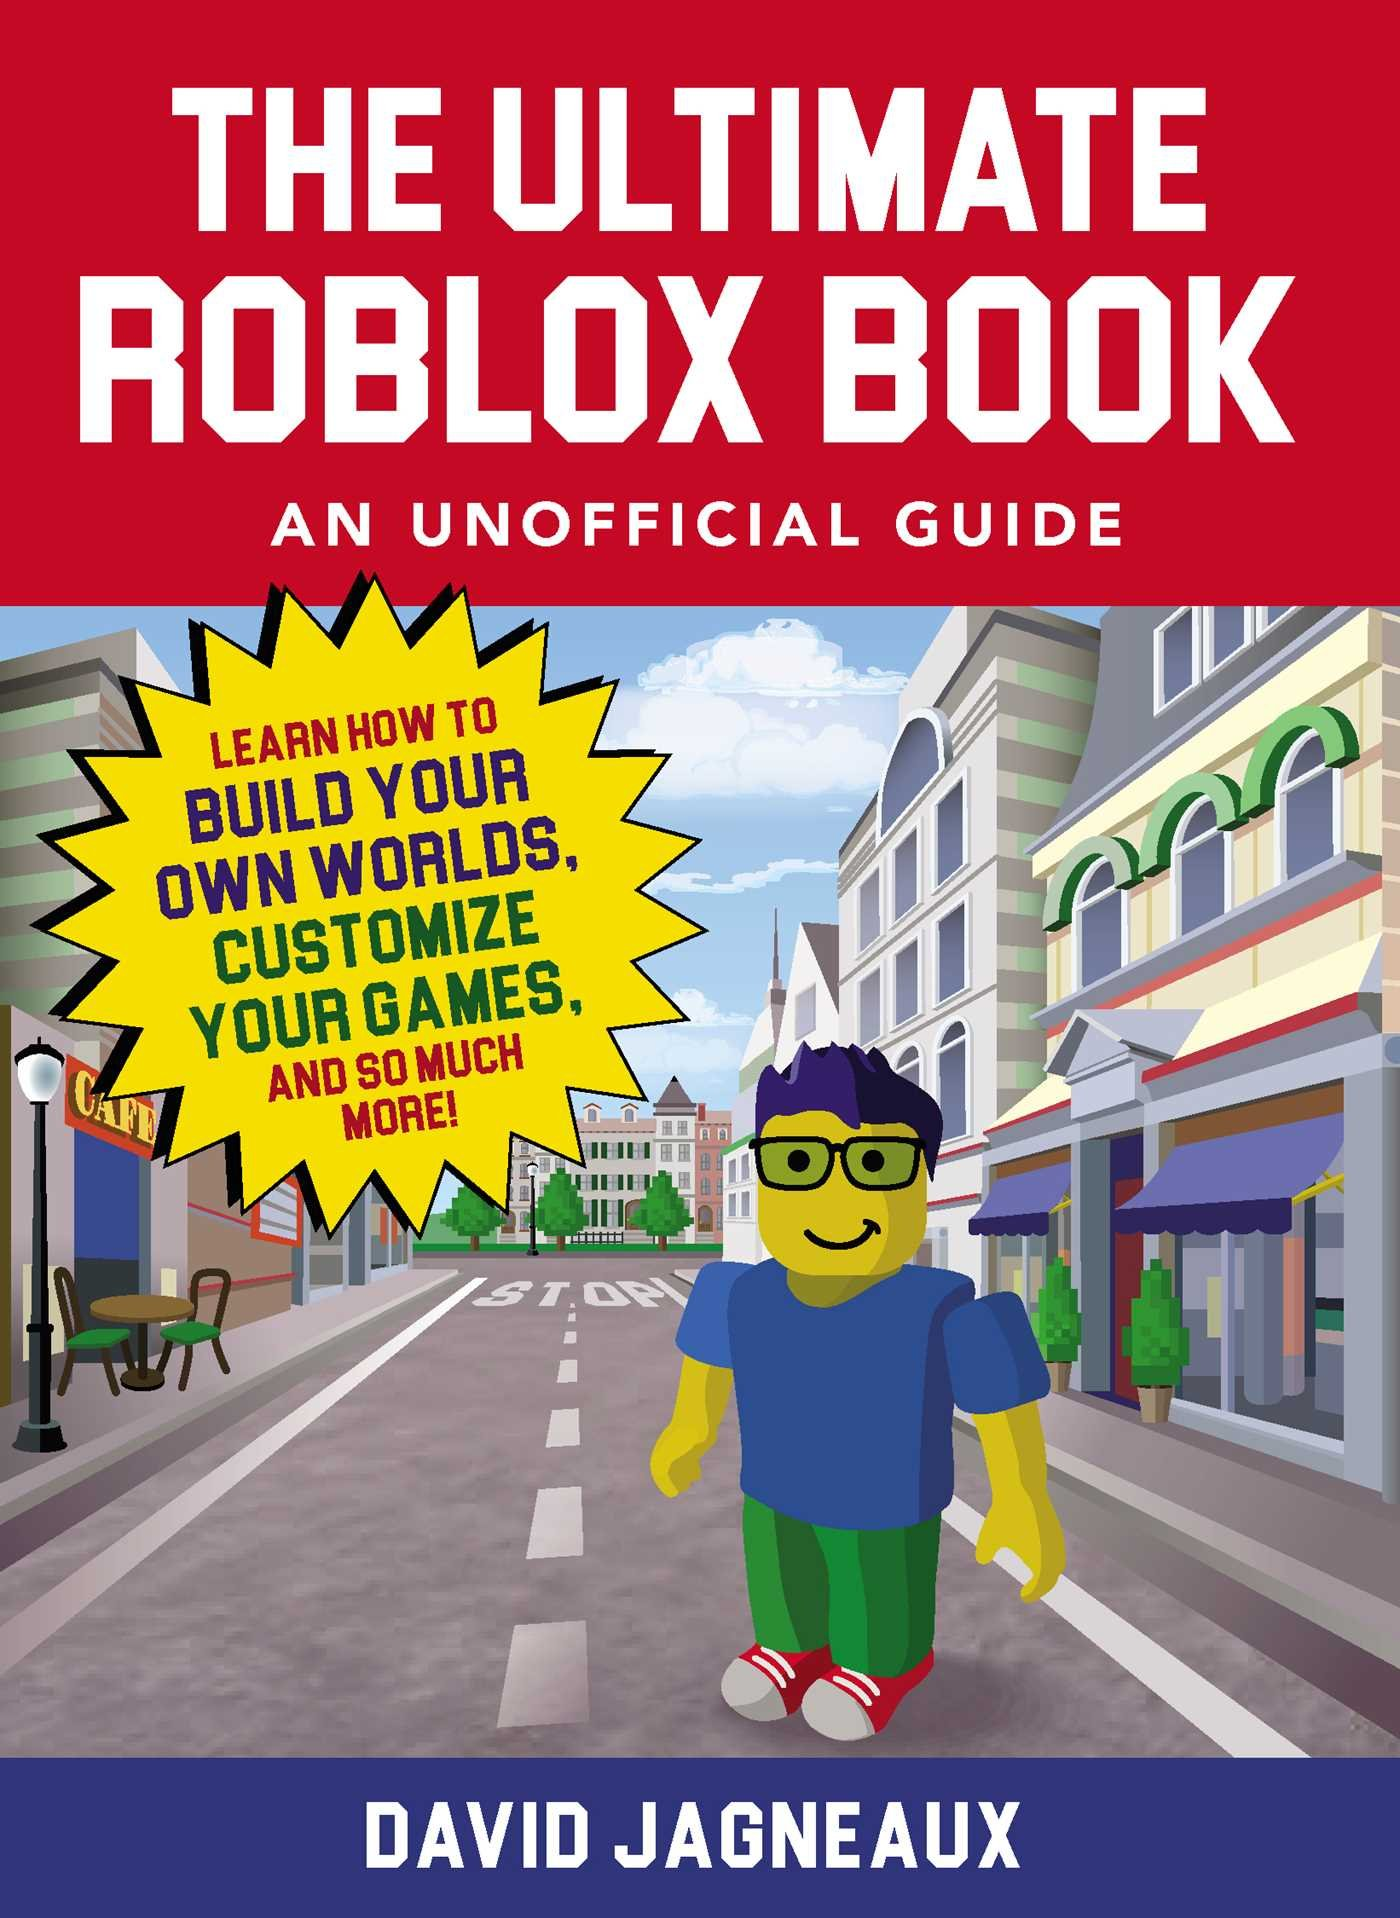 How To Put Piture When You Create Games In Roblox Amazon Com The Ultimate Roblox Book An Unofficial Guide Learn How To Build Your Own Worlds Customize Your Games And So Much More Unofficial Roblox 9781507205334 Jagneaux David Books